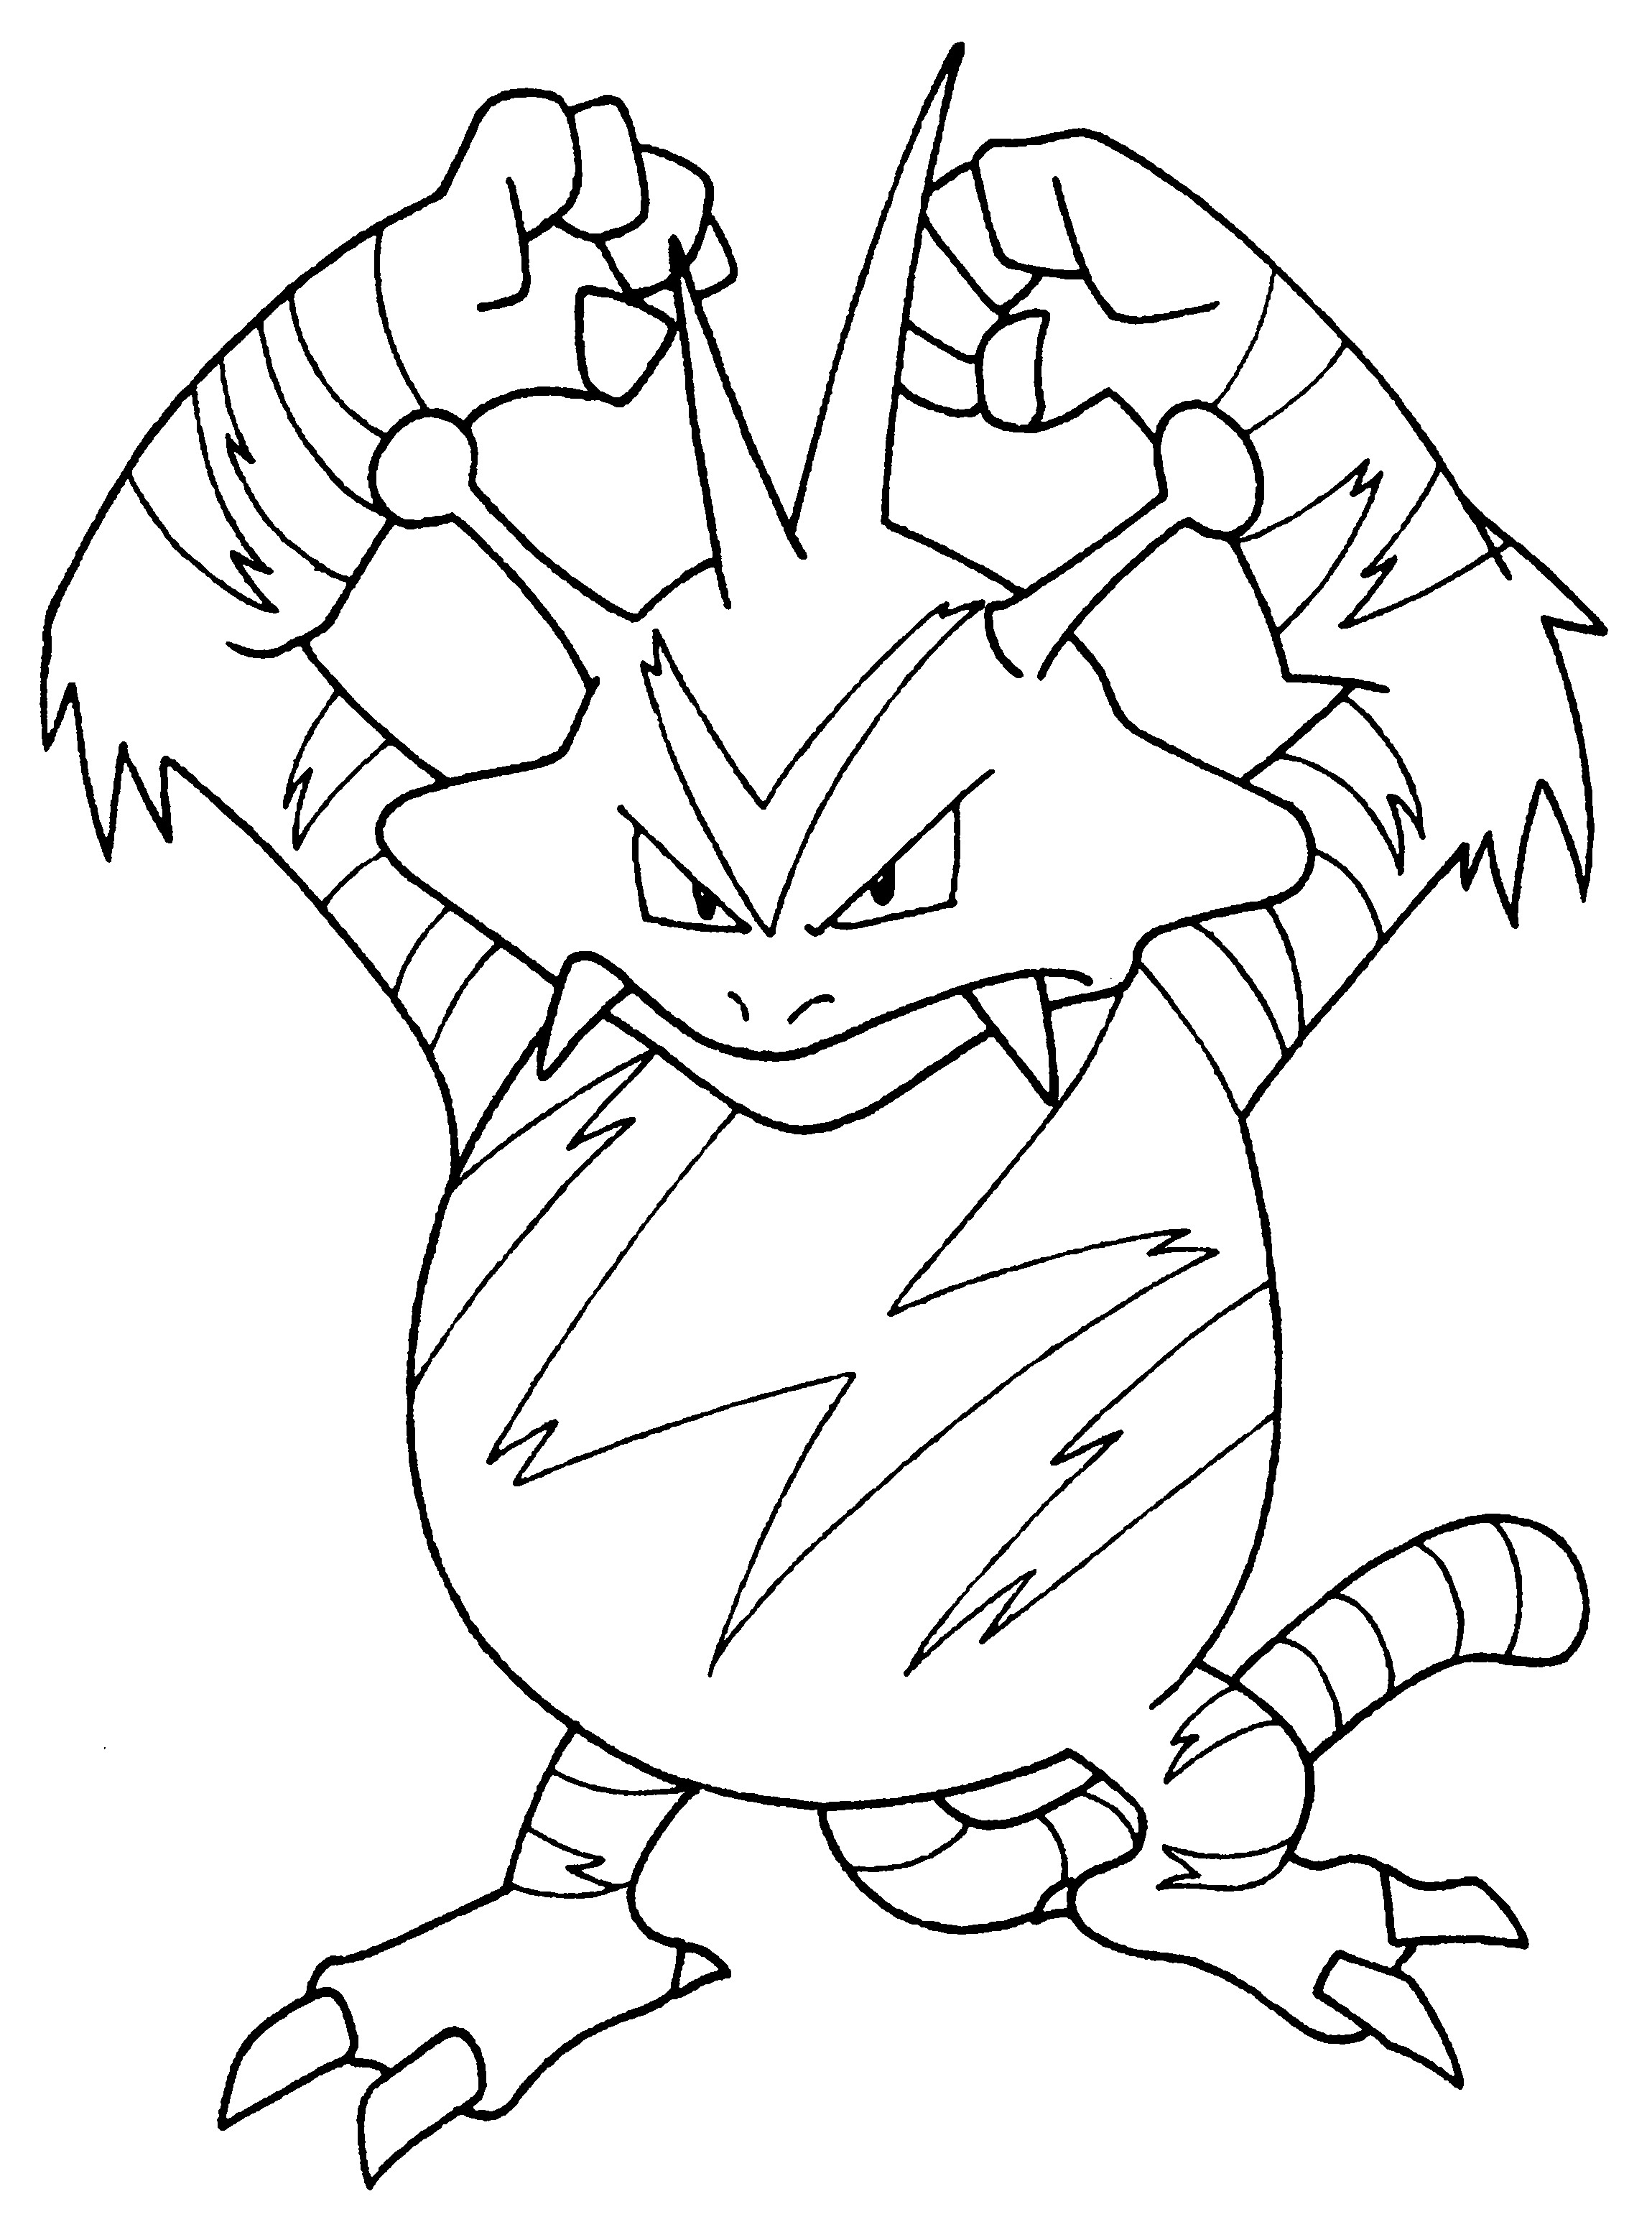 free pokemon printable coloring pages printable pokemon coloring pages lucario free printable coloring printable free pages pokemon